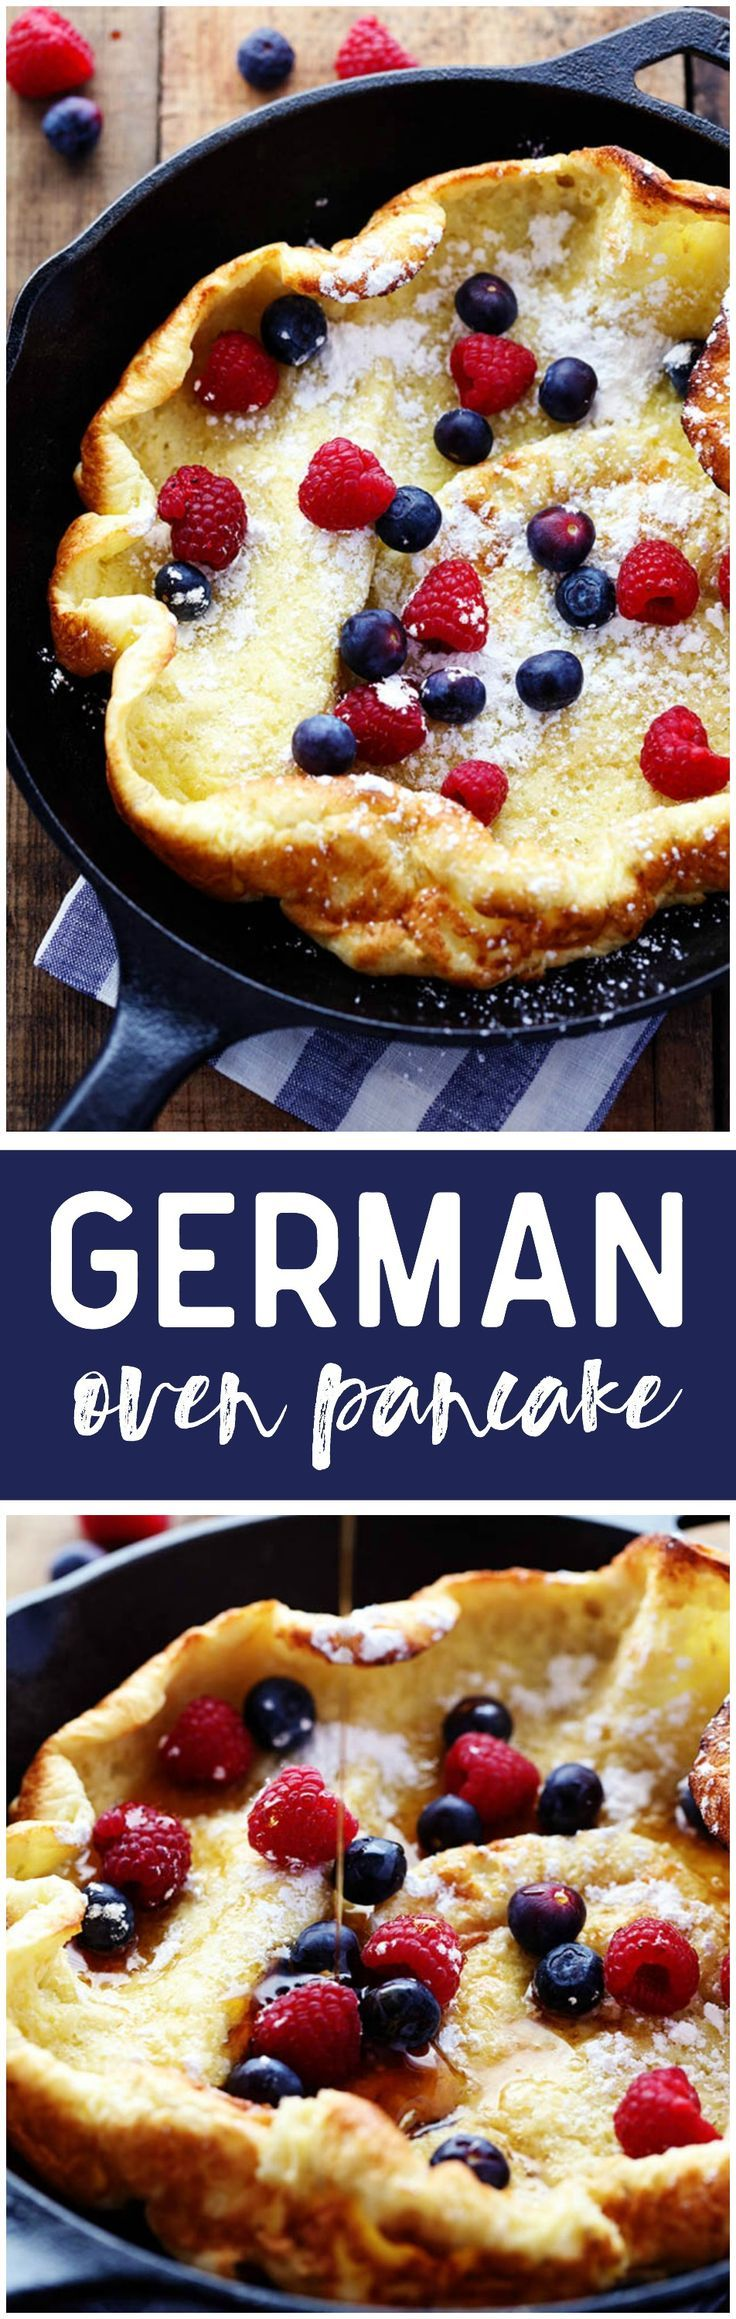 German Oven Pancake - A hot and puffy golden pancake that only requires 5 minutes of prep! This classic breakfast is always a huge hit at our house!